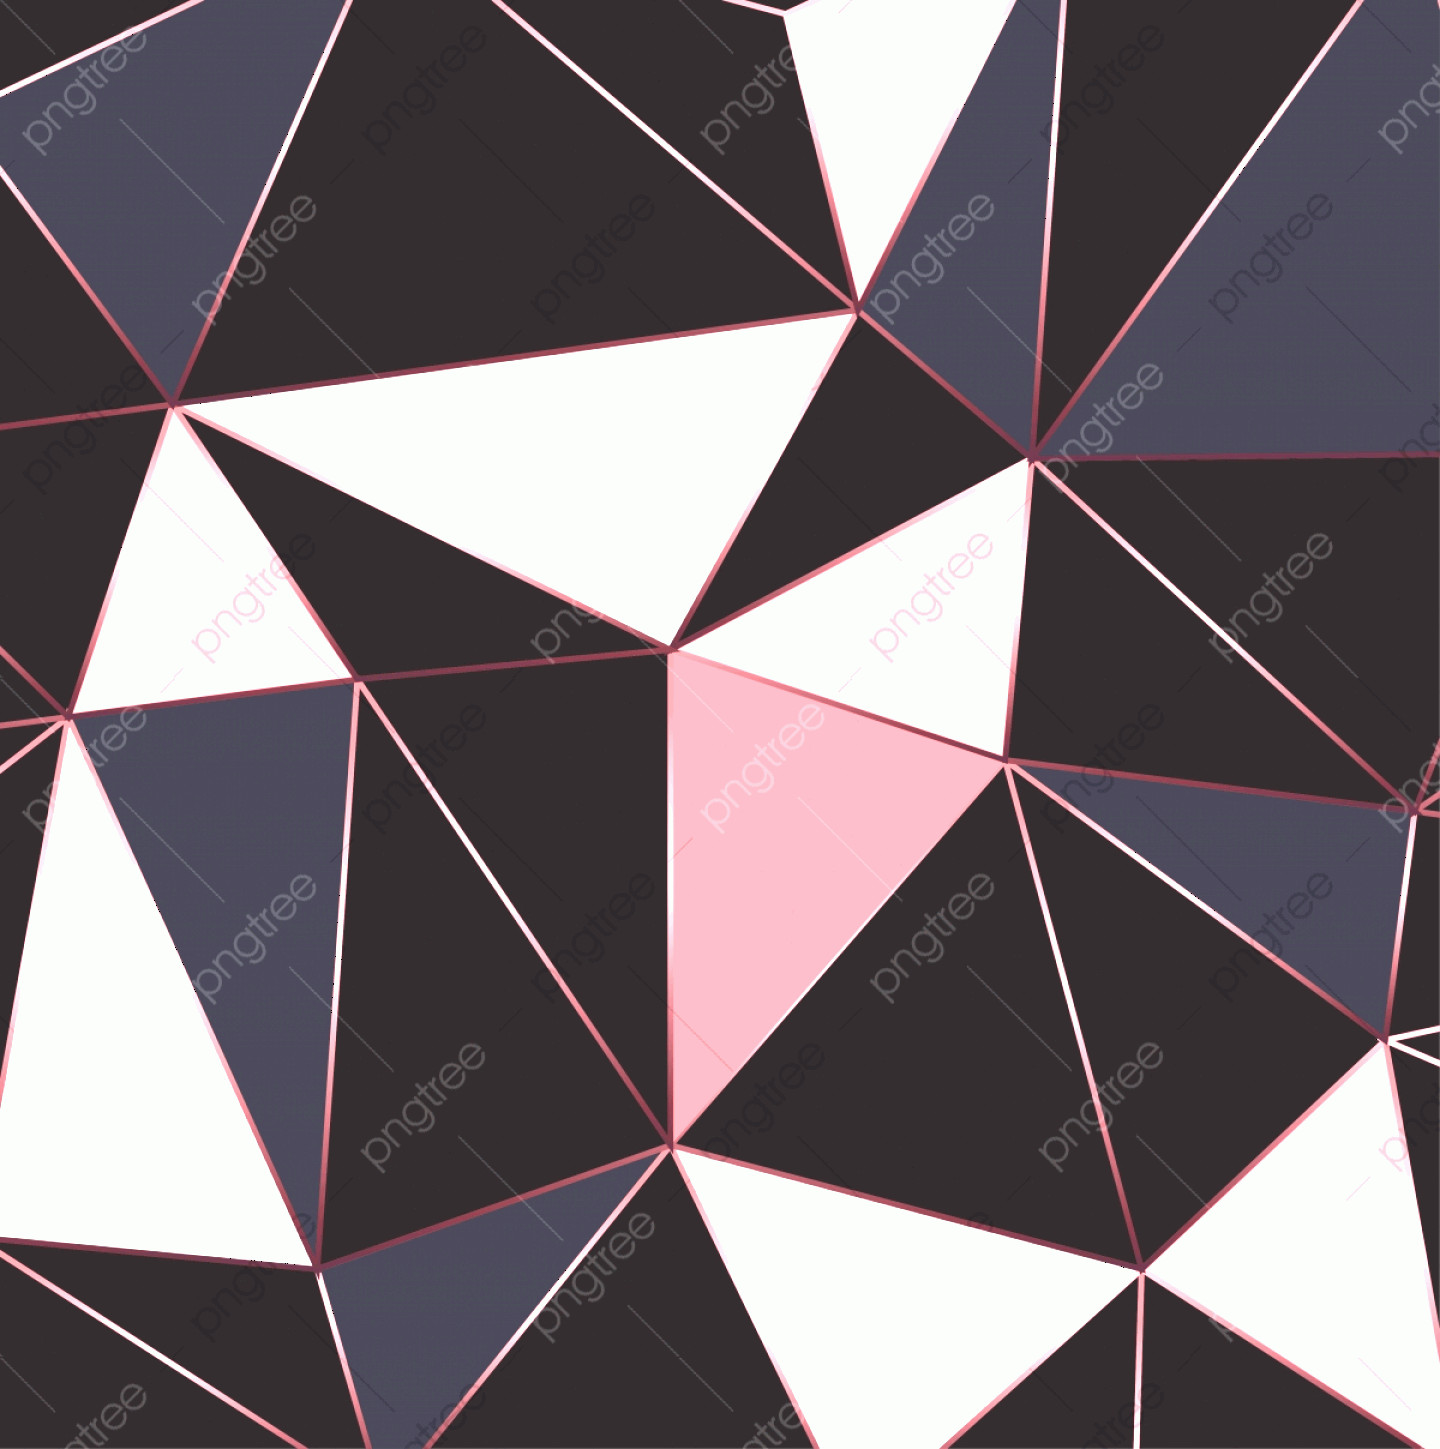 Contemporary Wallpaper Art Vector: Modern Mosaic Wallpaper In Rose Gold Gold And Black